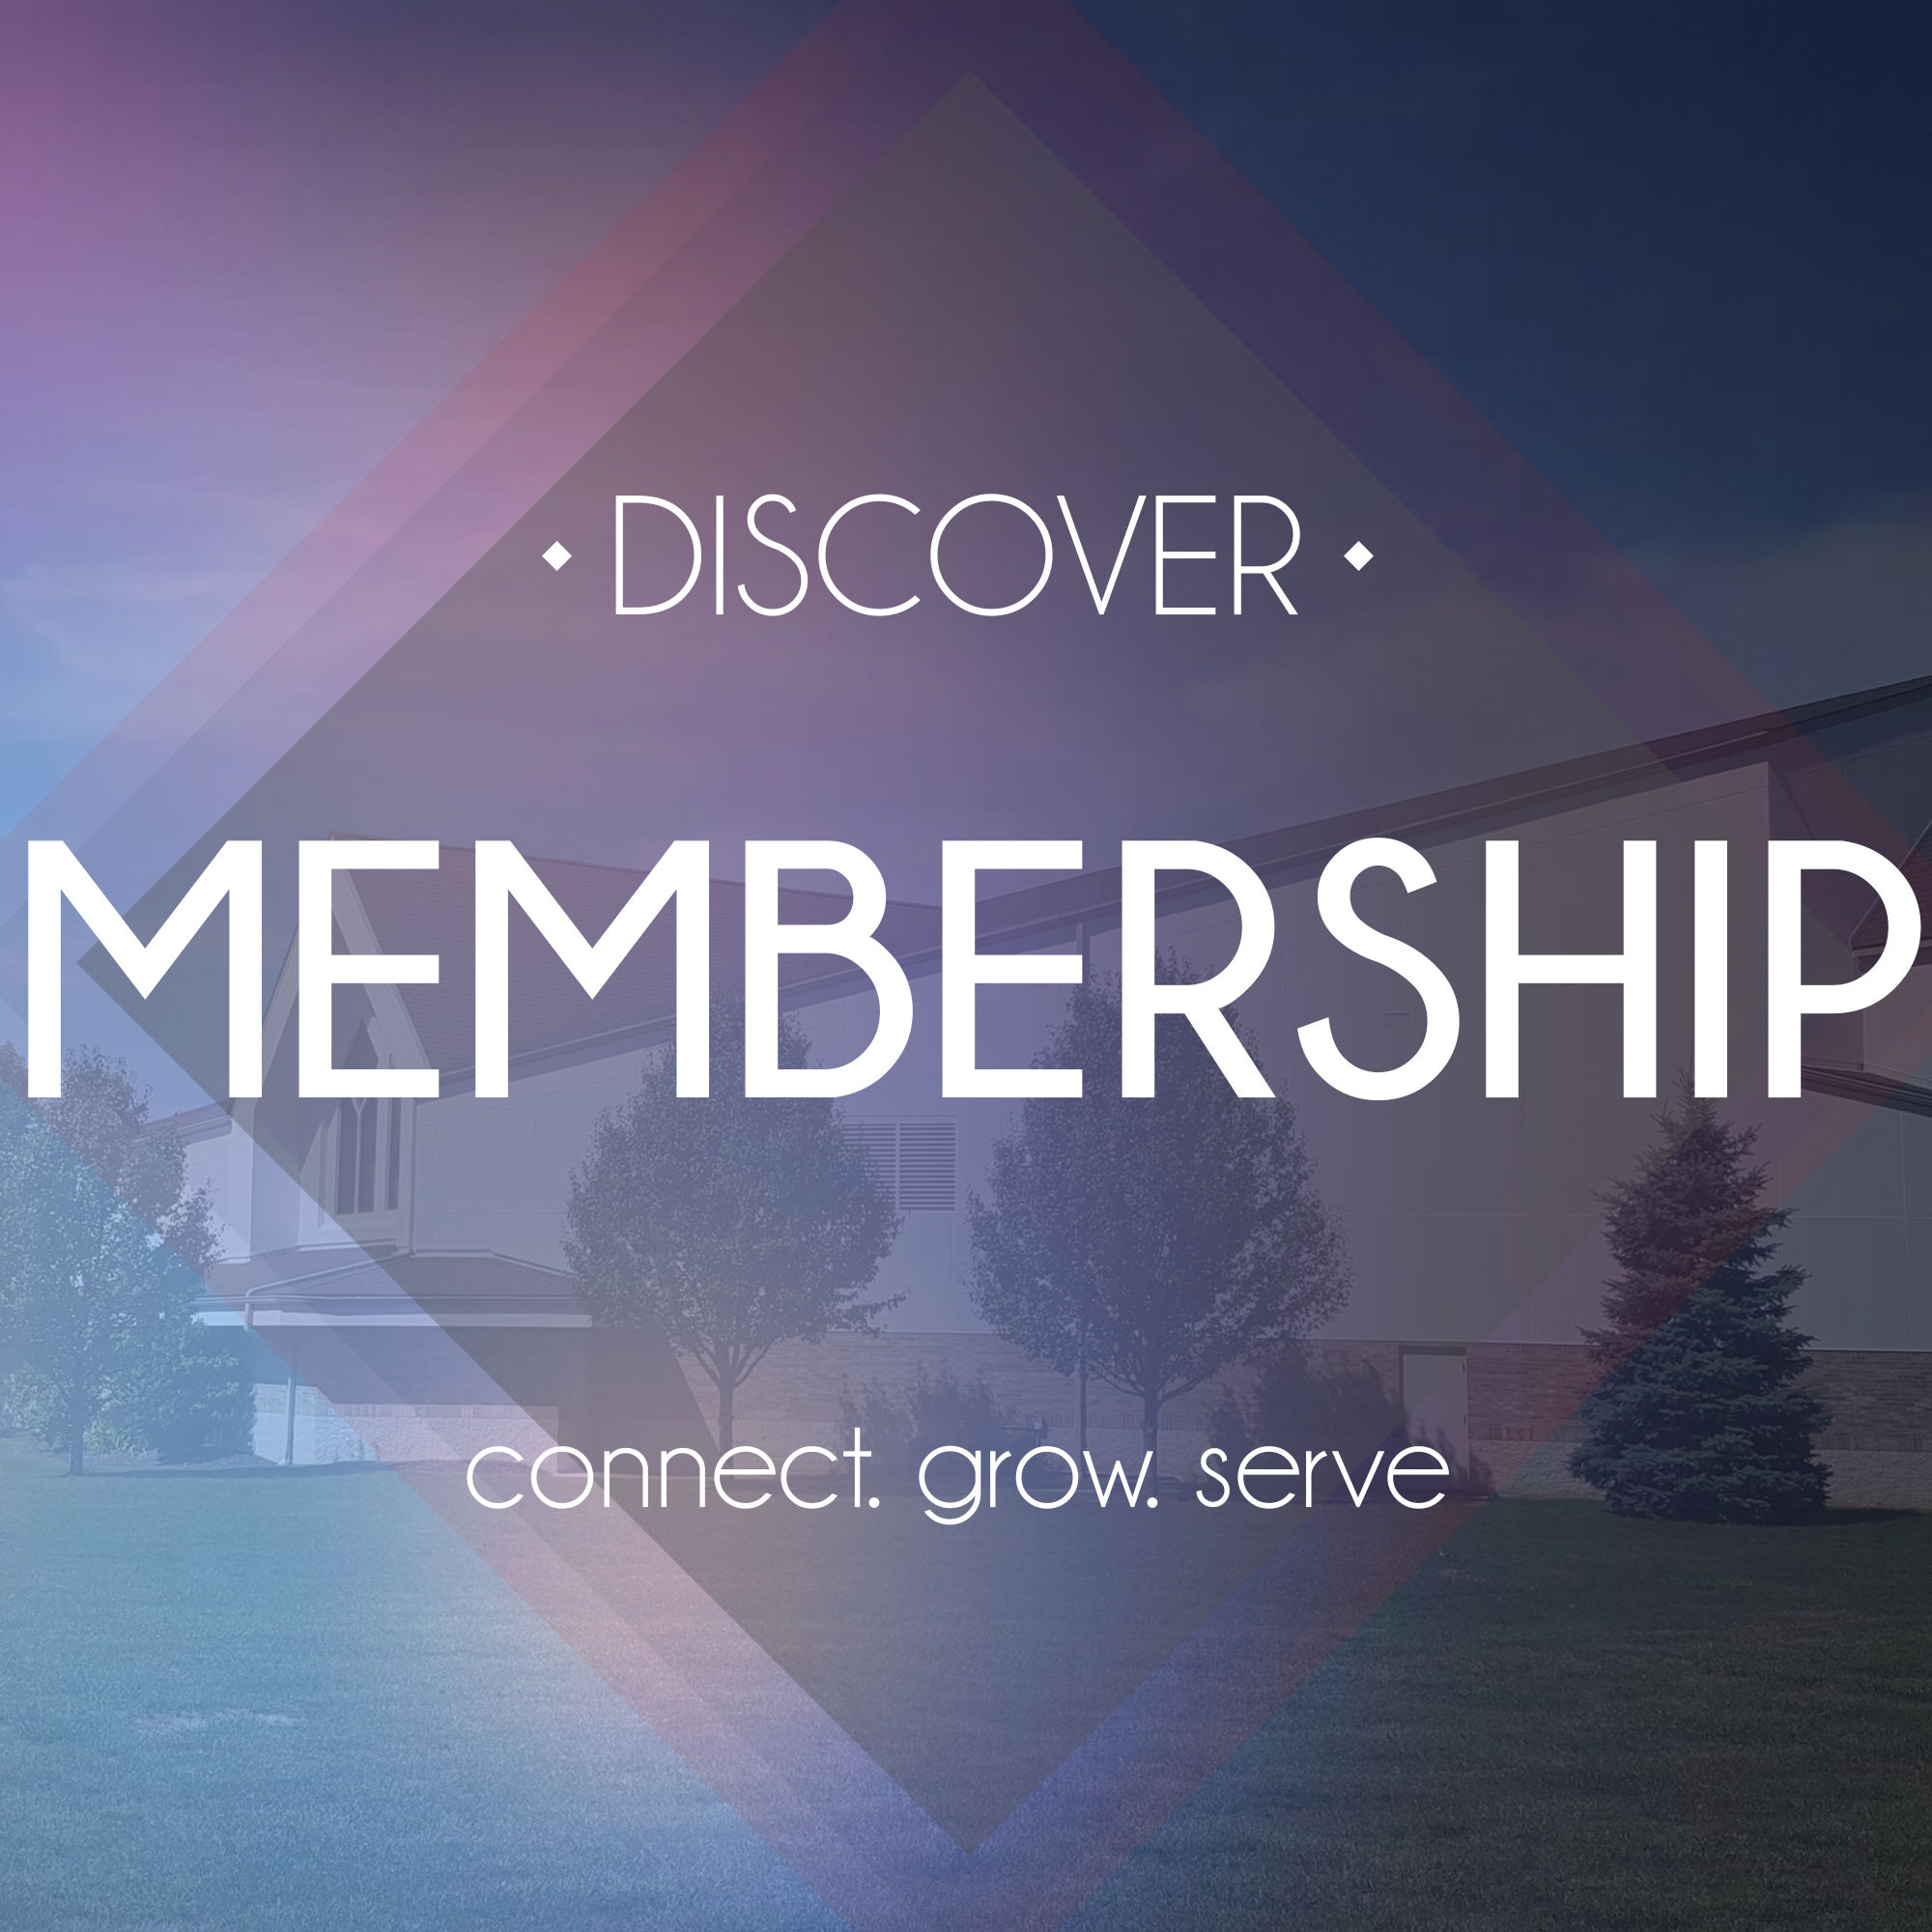 Faith Community Church - Staten Island, NY |Membership Class